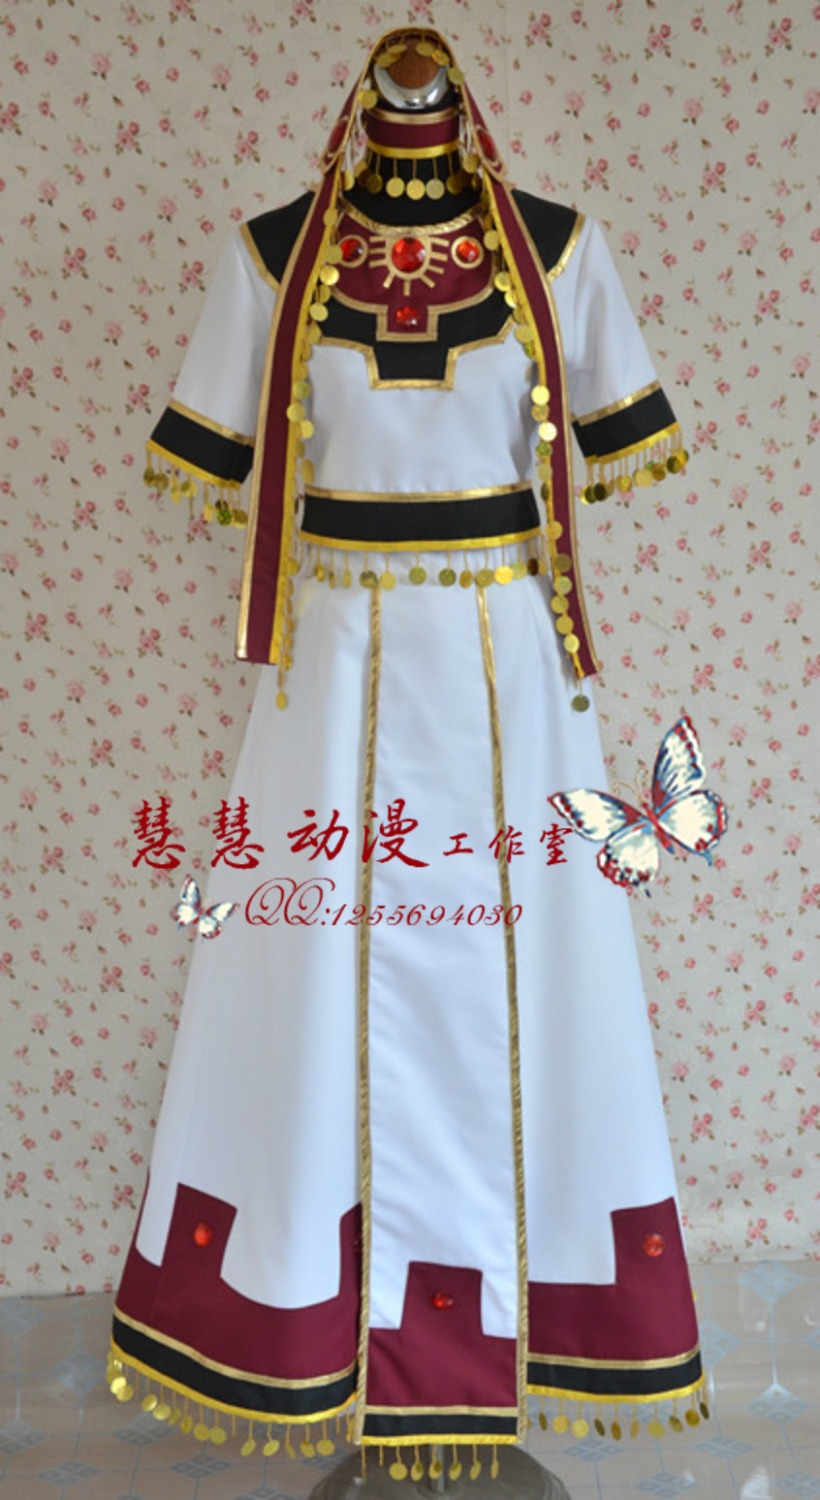 2016 Tsubasa Reservoir Chronicle Sakura Halloween Cosplay Costume Sakura Dress купить недорого в Москве